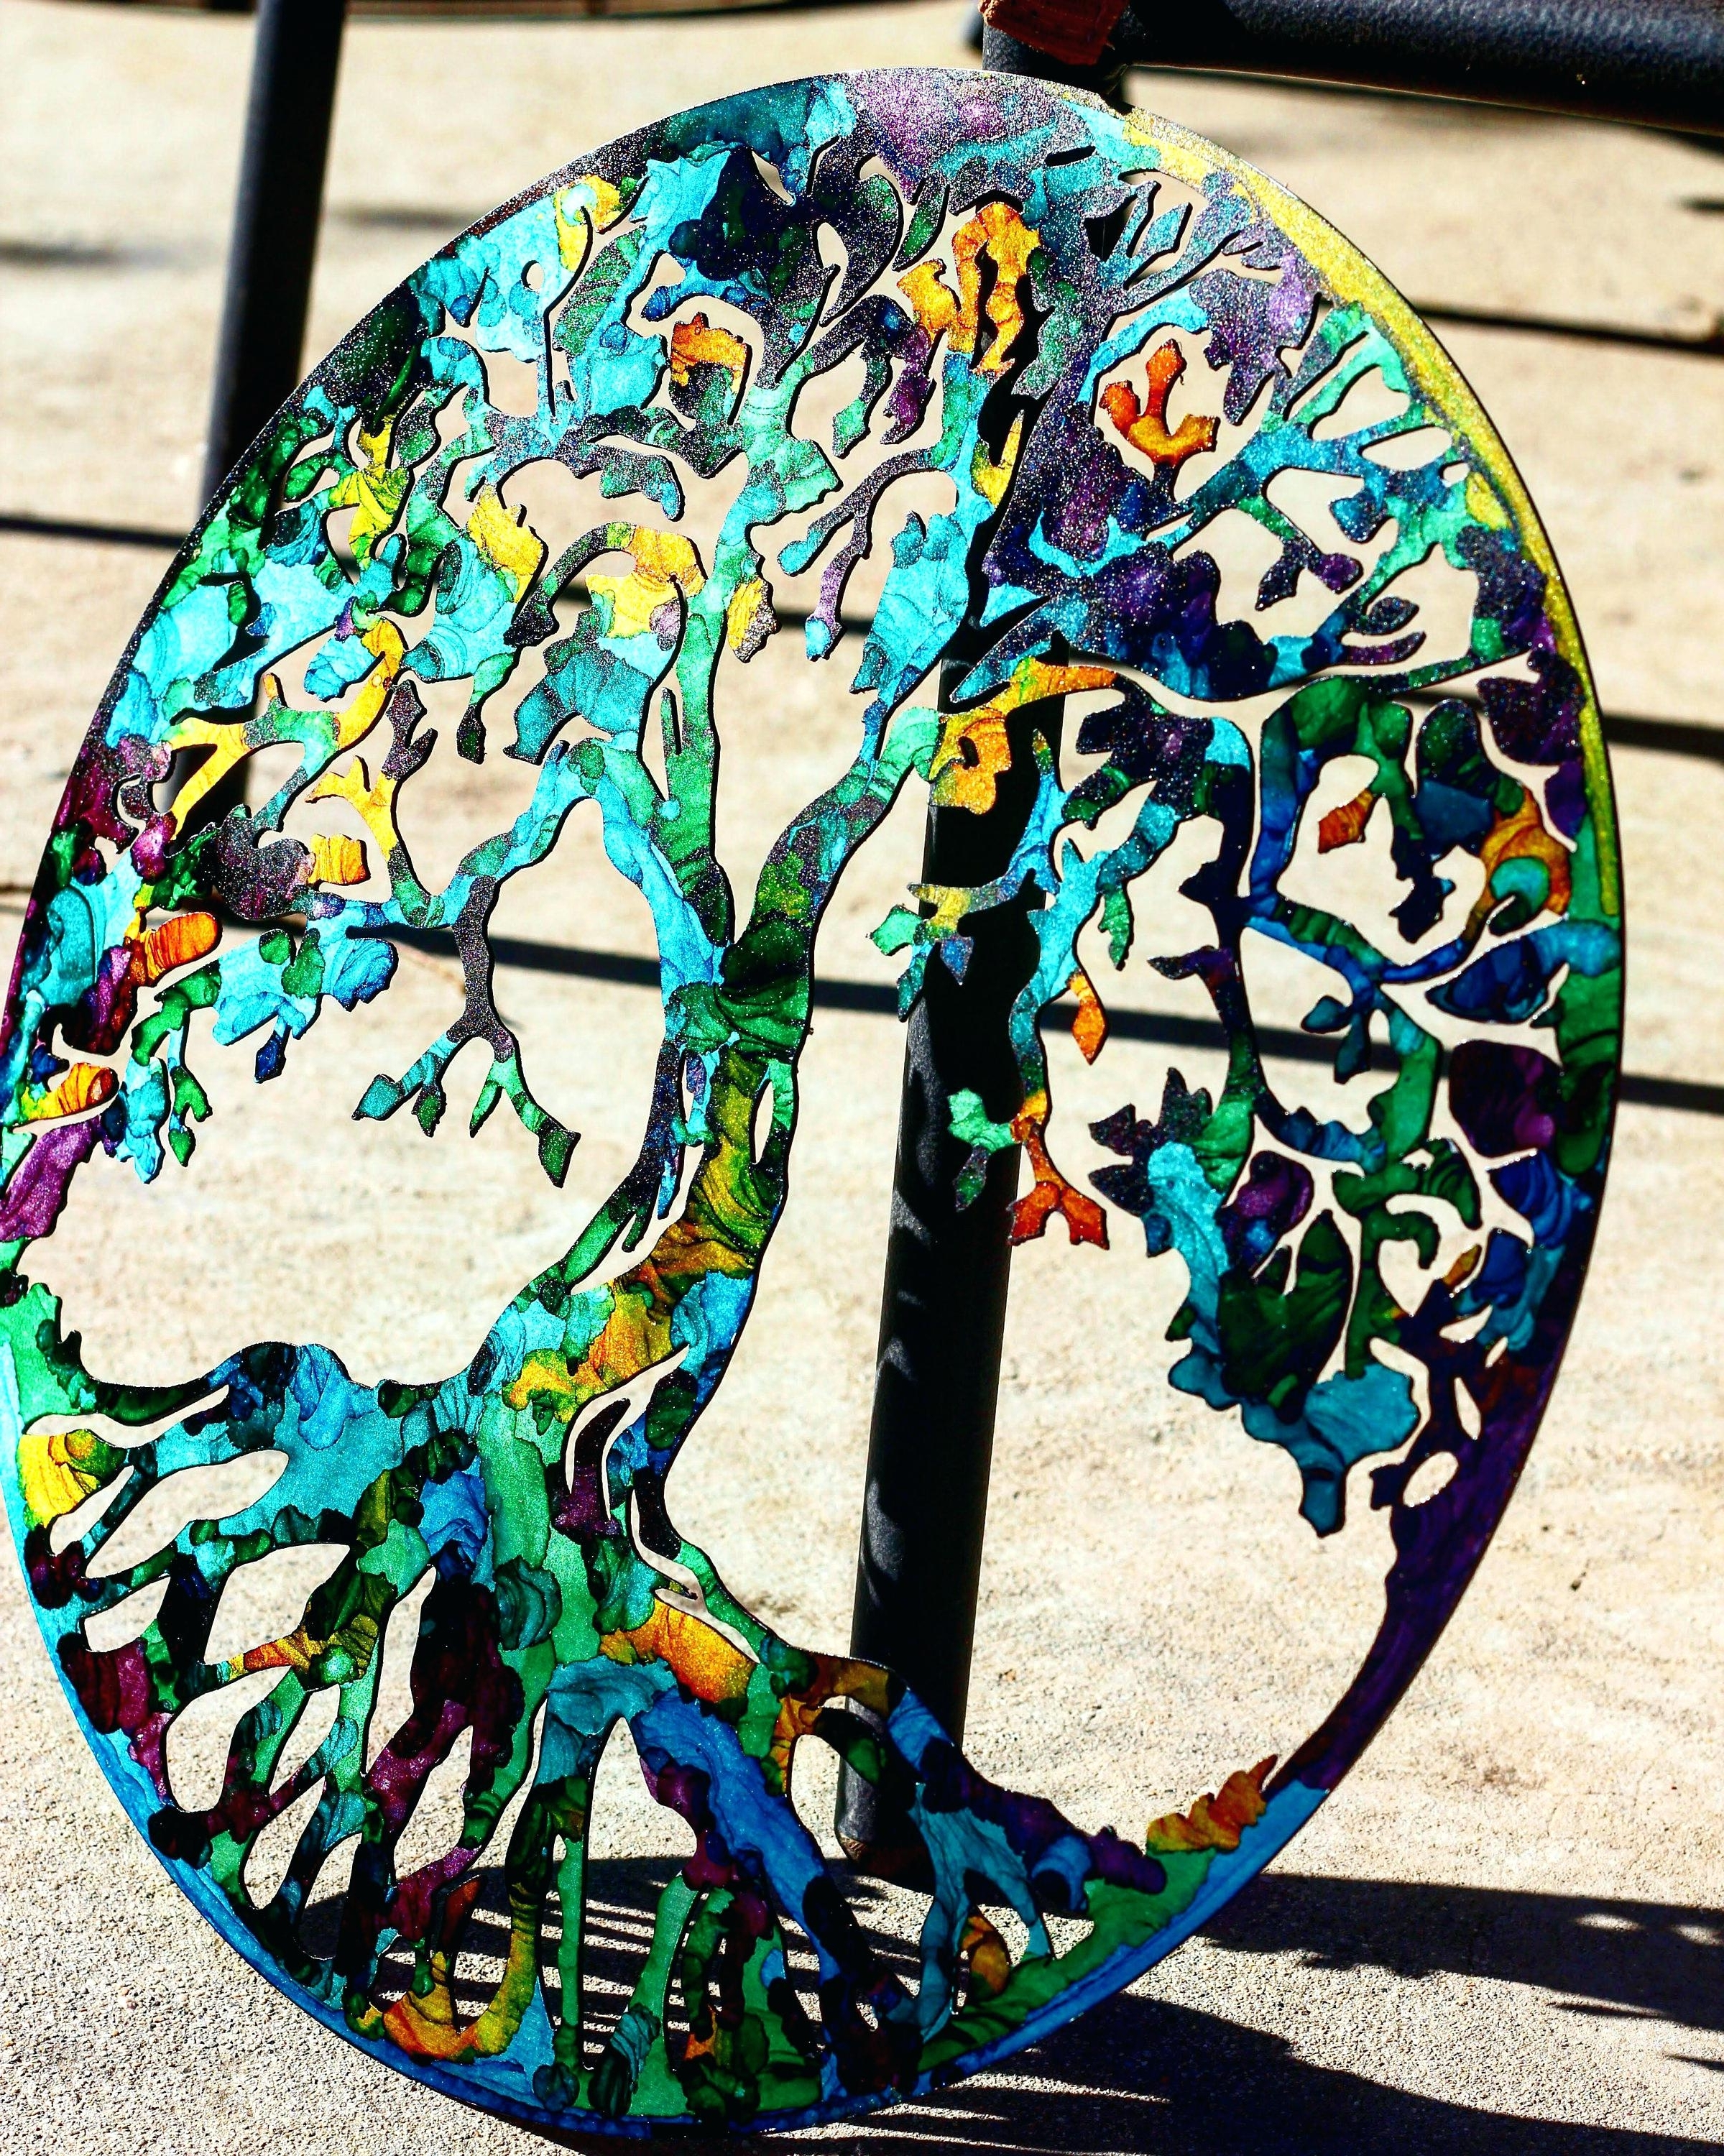 Fused Glass And Metal Wall Art Within Latest Stained Glass Wall Hangings Best Ceramic And Fused Glass Wall Art (View 8 of 15)